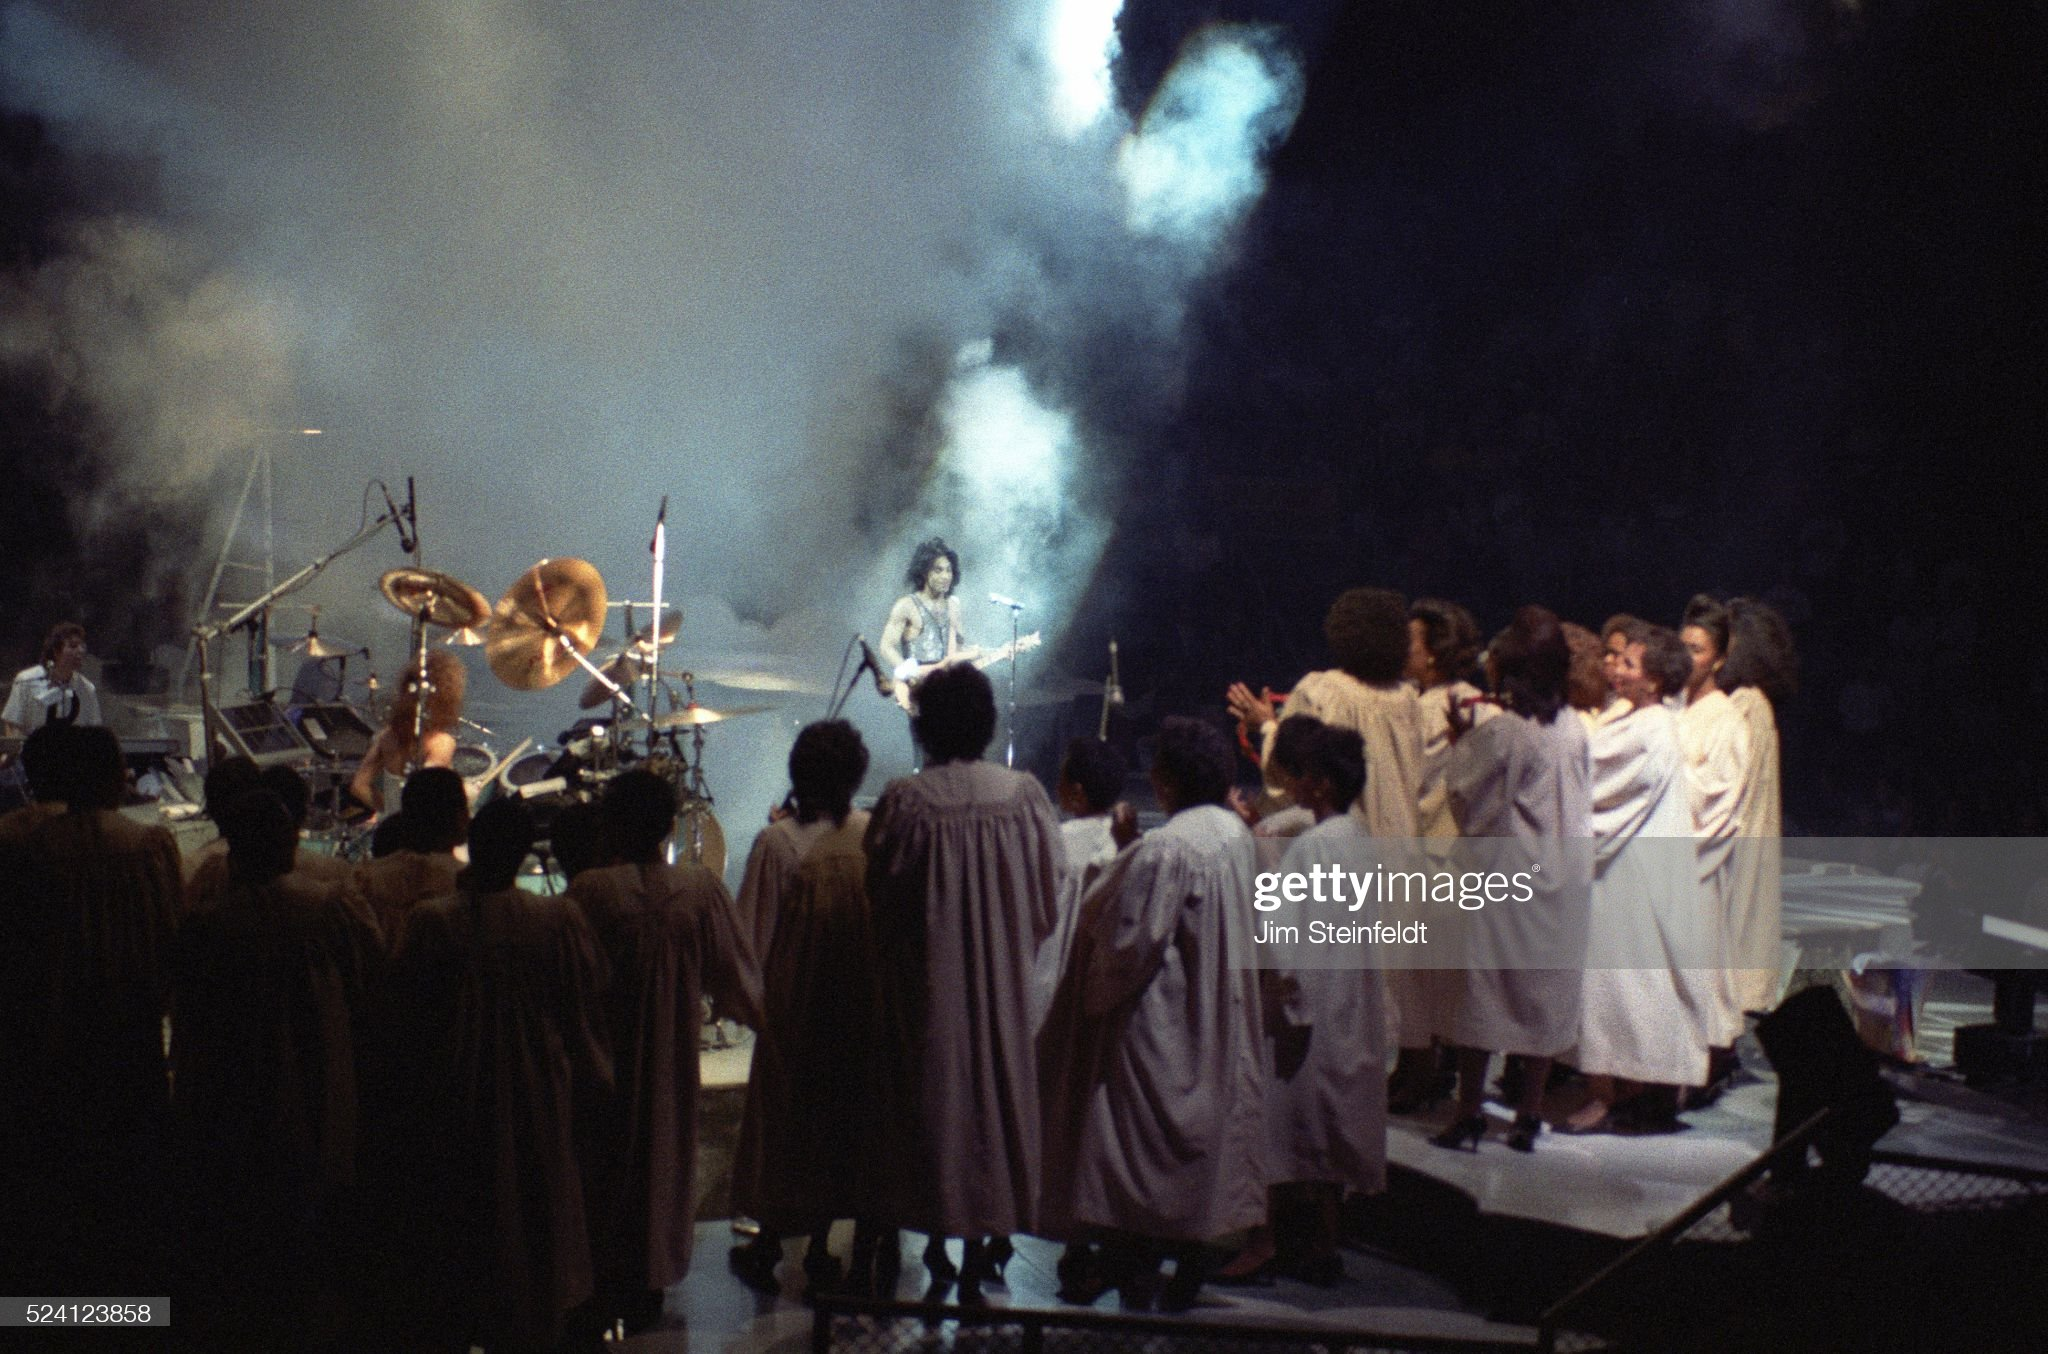 prince-performs-during-the-lovesexy-tour-at-the-met-center-in-on-picture-id524123858?s=2048x2048